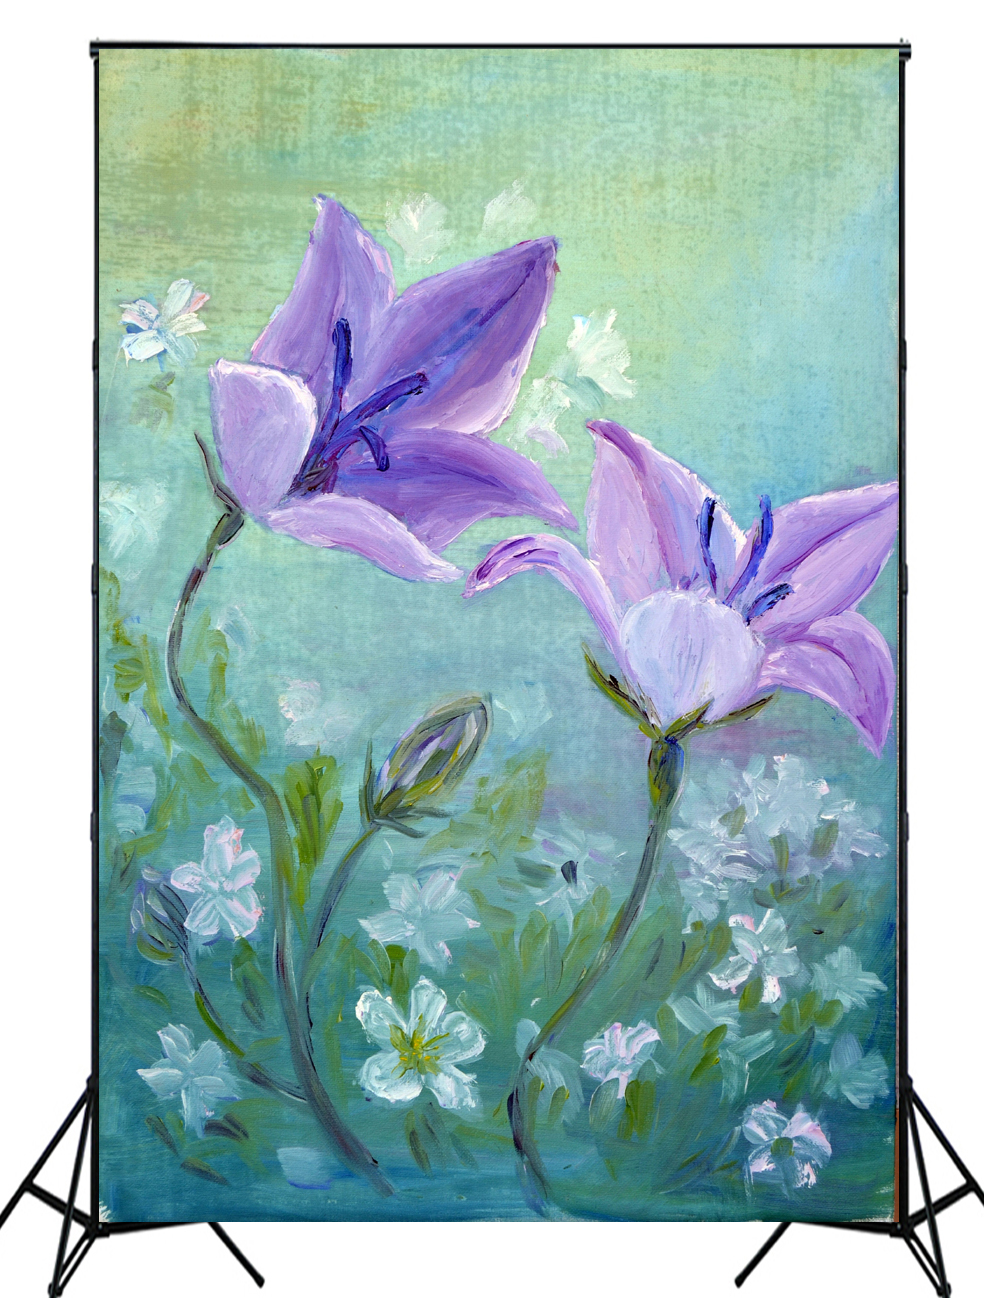 2016 New arrival digital oil painting flower photography backdrops photo background for newborn photo XT-4190<br><br>Aliexpress